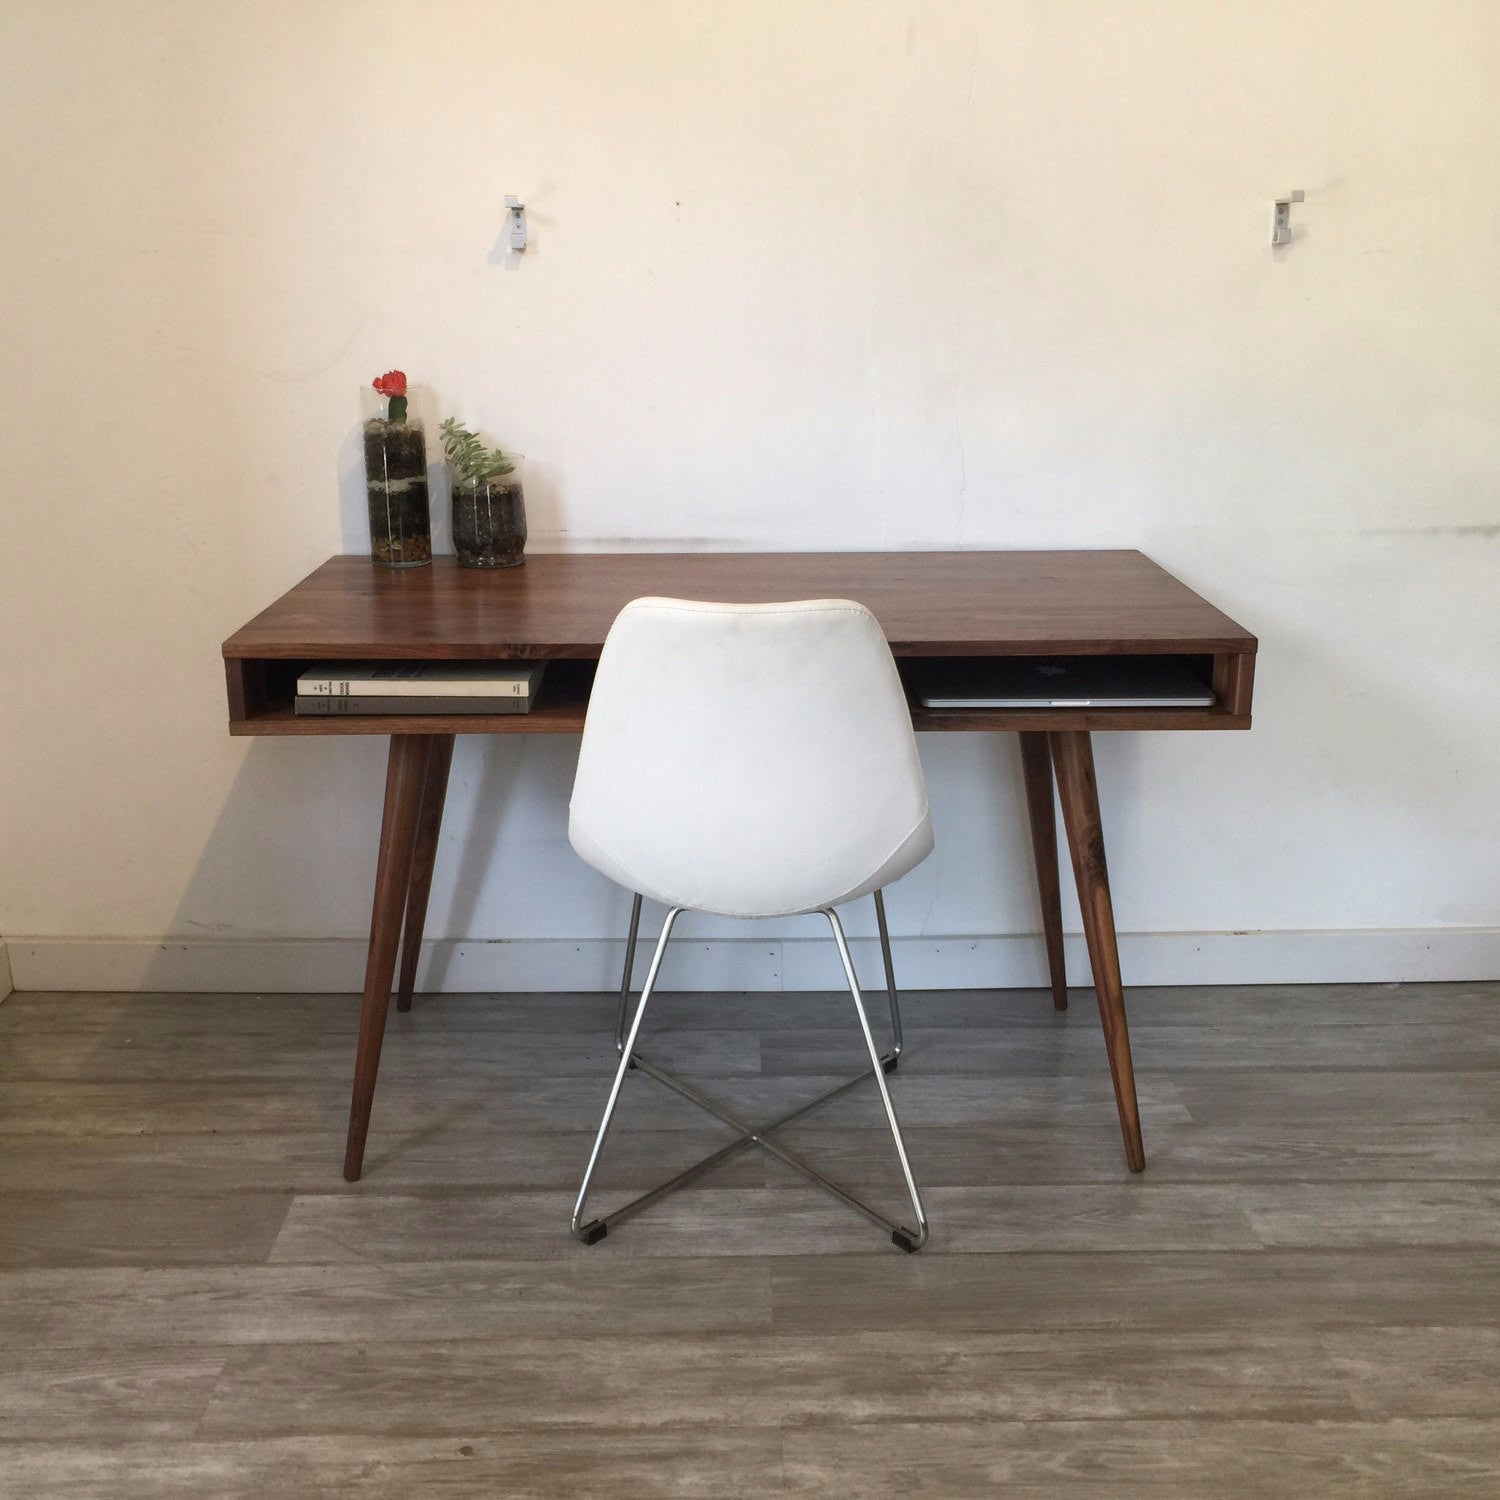 Open Mid Century Modern Desk - JeremiahCollection - 3